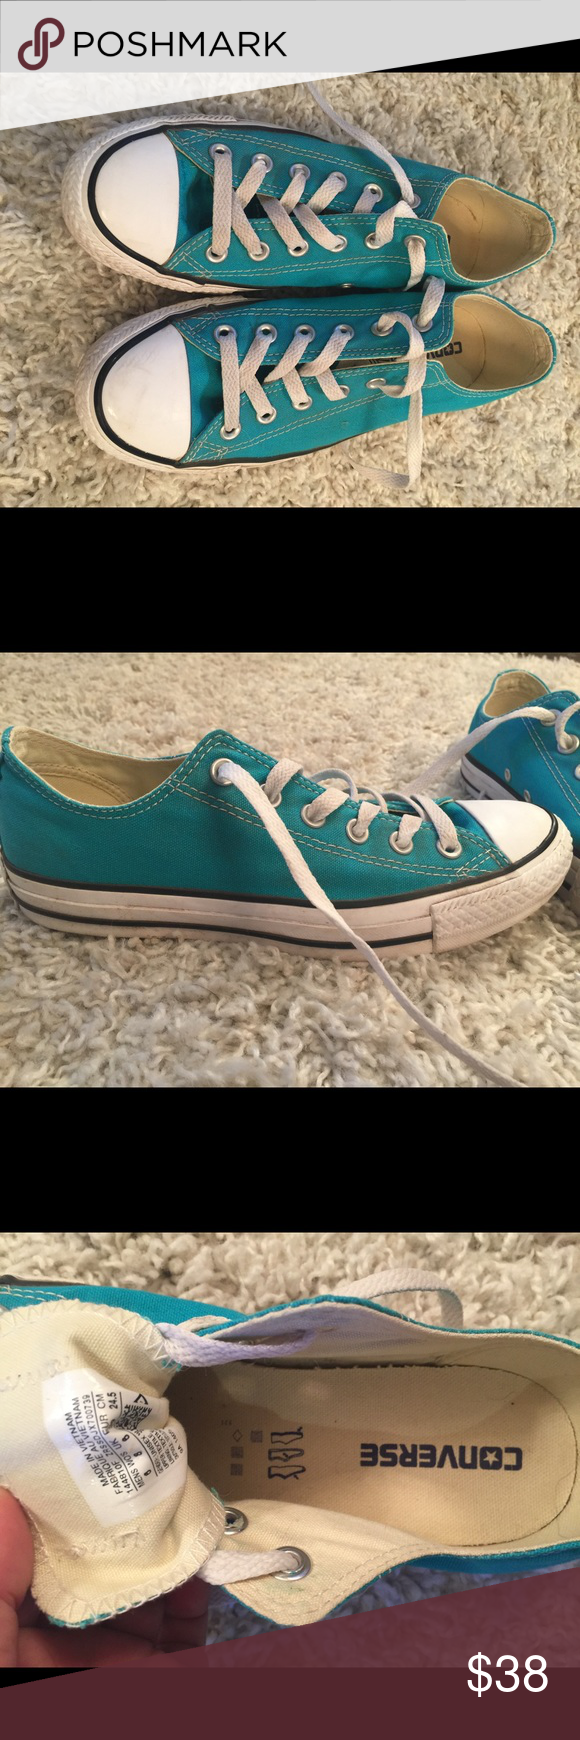 Converse Teal Tennis Shoes -Size 8 Pair of teal green Converse in a woman's size 8.  This is my favorite color, but I only wore them a couple of times.  Have very faint scuffing on the top of one of the toes, otherwise in great condition with very light signs of wear. Converse Shoes Athletic Shoes